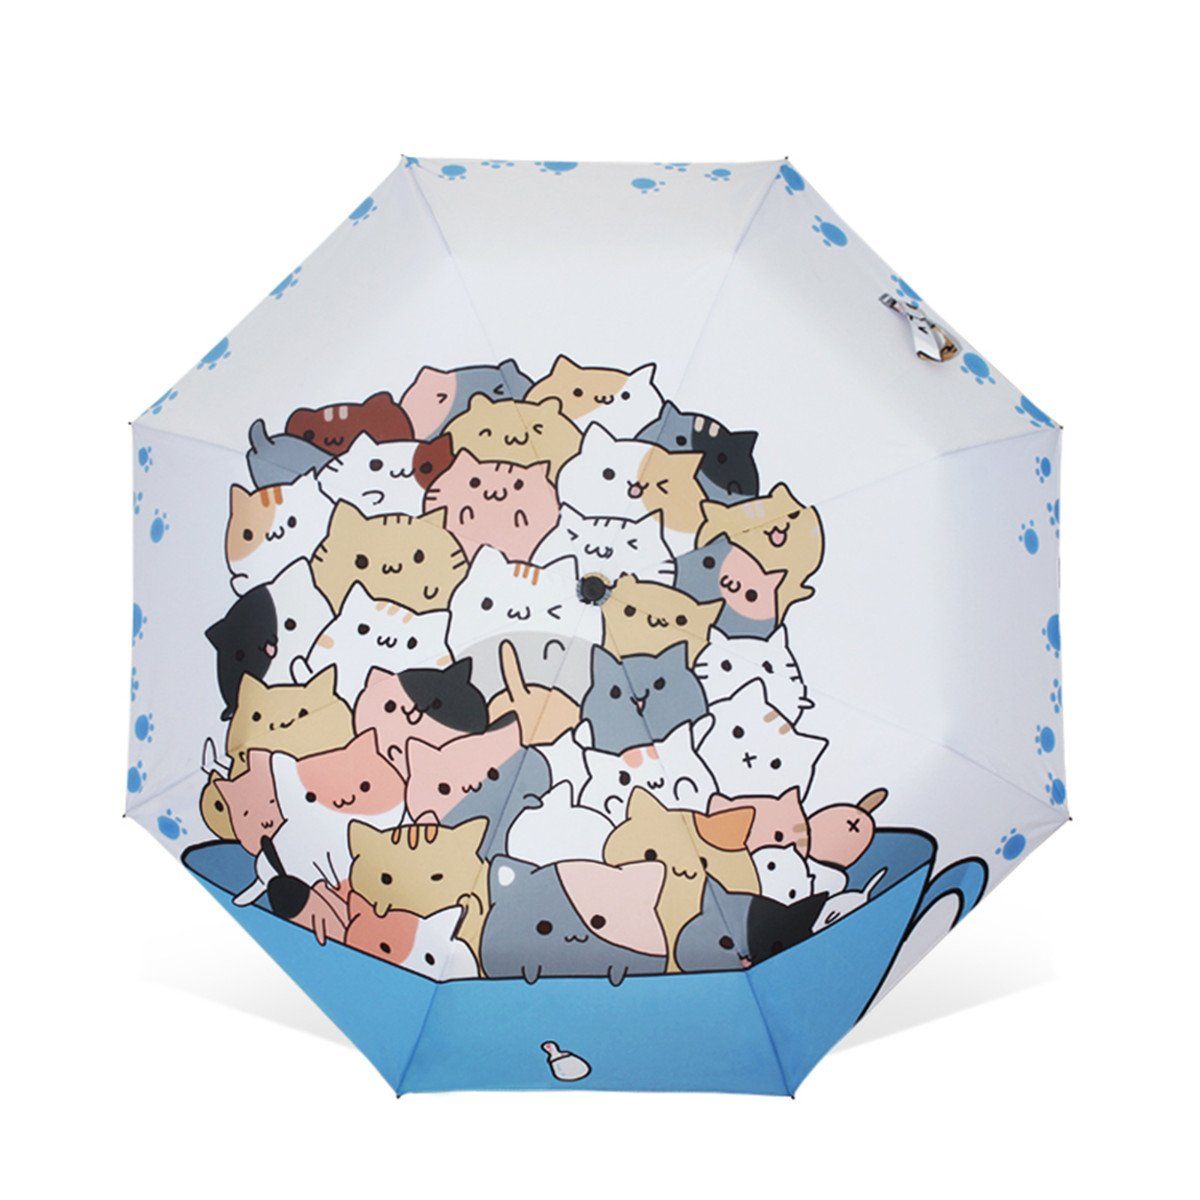 Artistic Umbrella Light-weighted Folding Umbrella with Anti-UV and Windproof Funtions Suitable for Both Sunny and Raining Days- Available In 5 Patterns (Cup Cat)